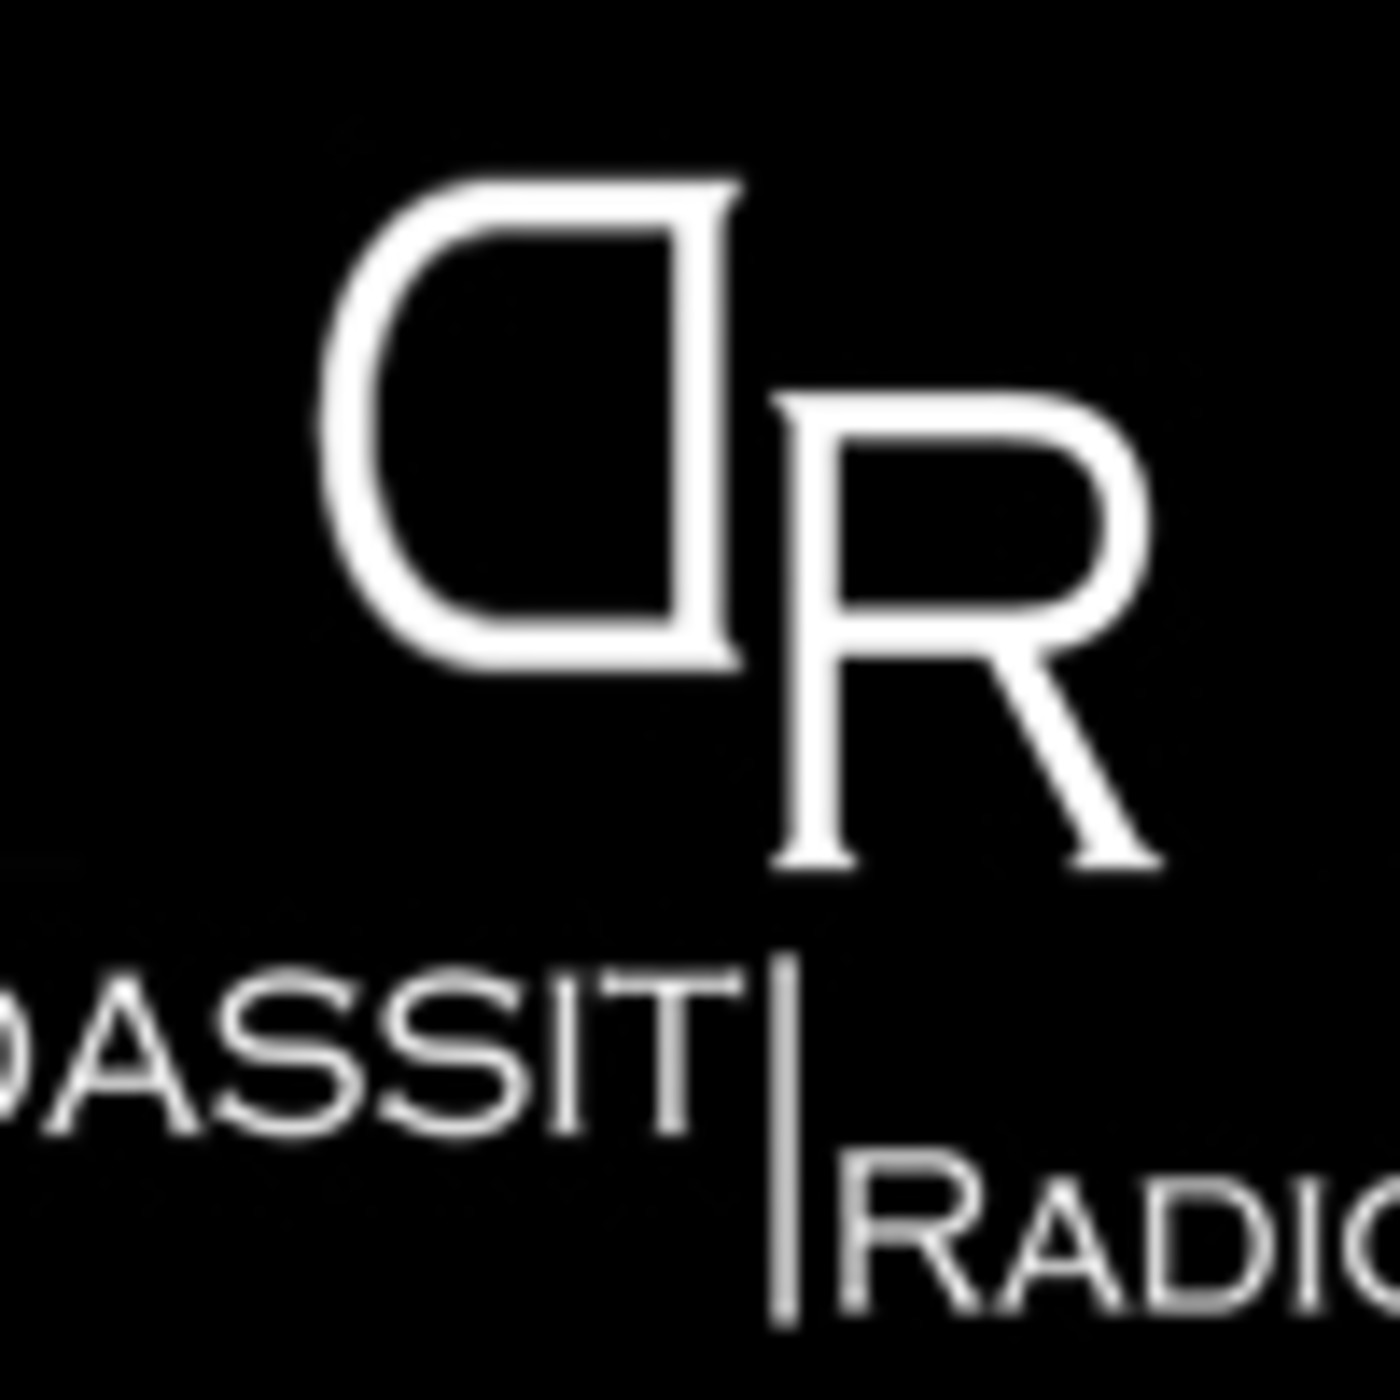 DASSIT RADIO.net WORD UP WEDNESDAYS -LIVE-'s Podcast